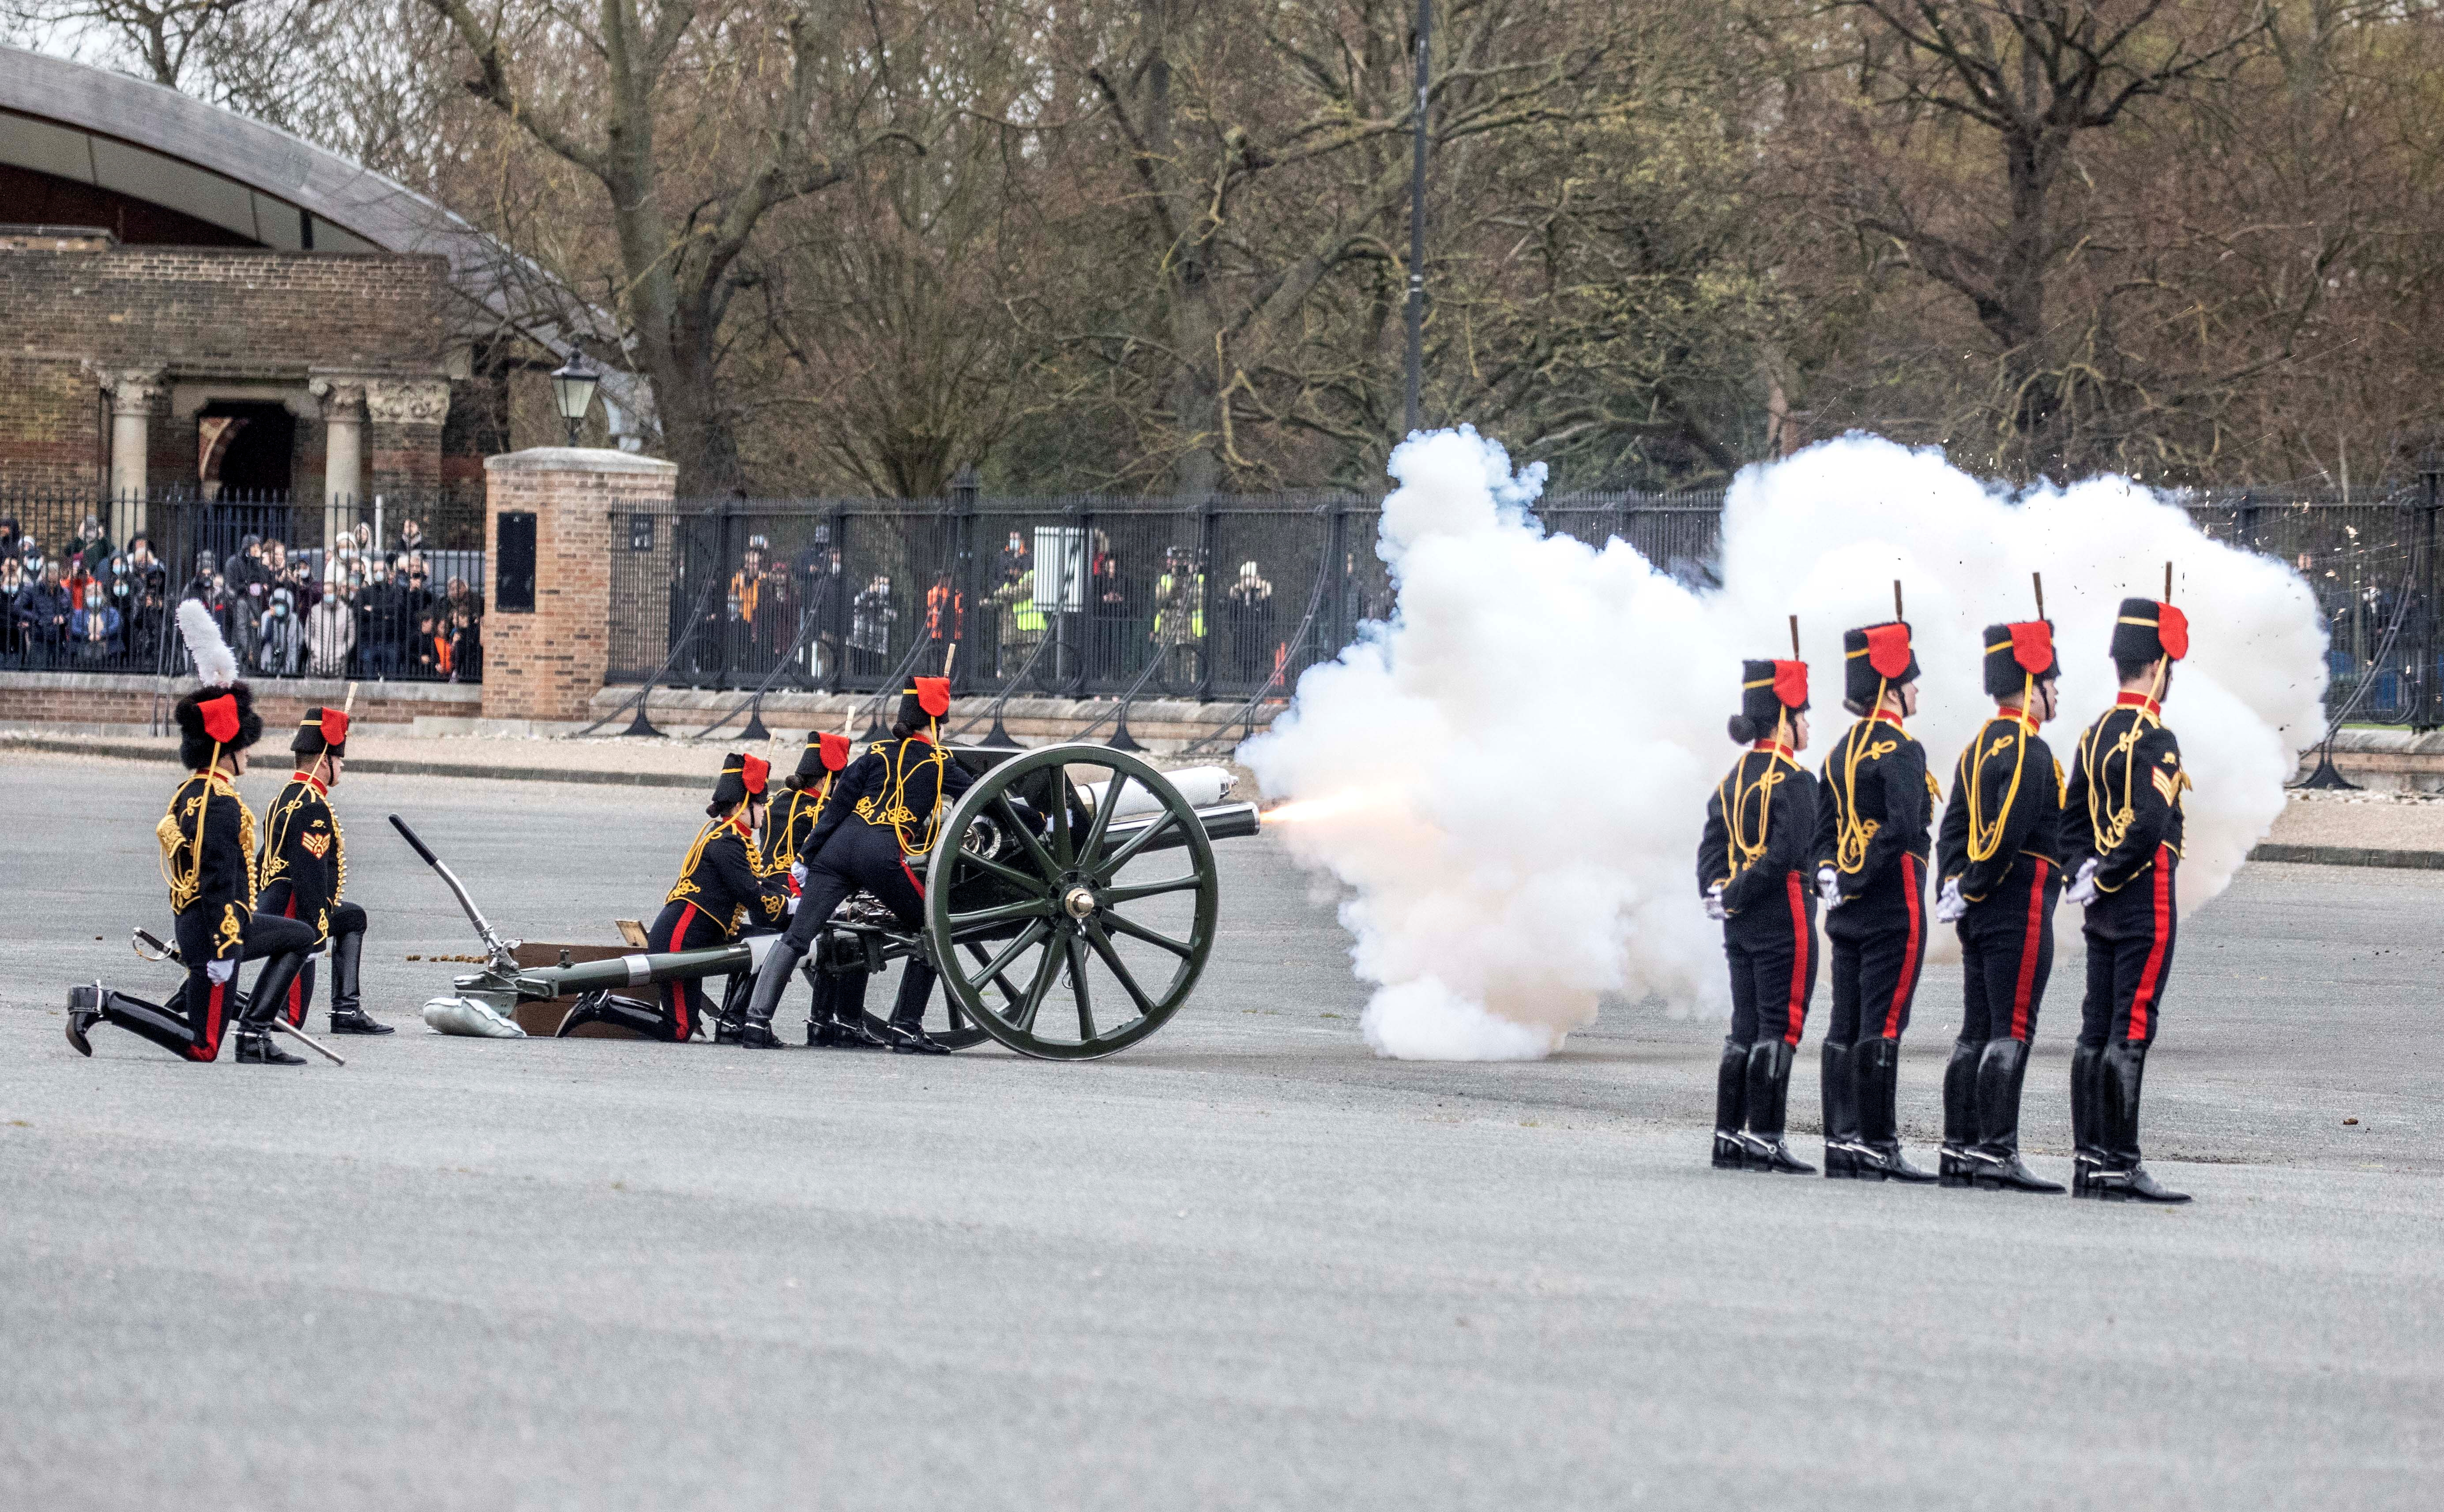 Members of The King's Troop Royal Horse Artillery fire a gun salute to mark the death of Britain's Prince Philip, husband of Queen Elizabeth, at the Parade Ground, Woolwich Barracks in central London, Britain April 10, 2021. Richard Pohle/Pool via REUTERS